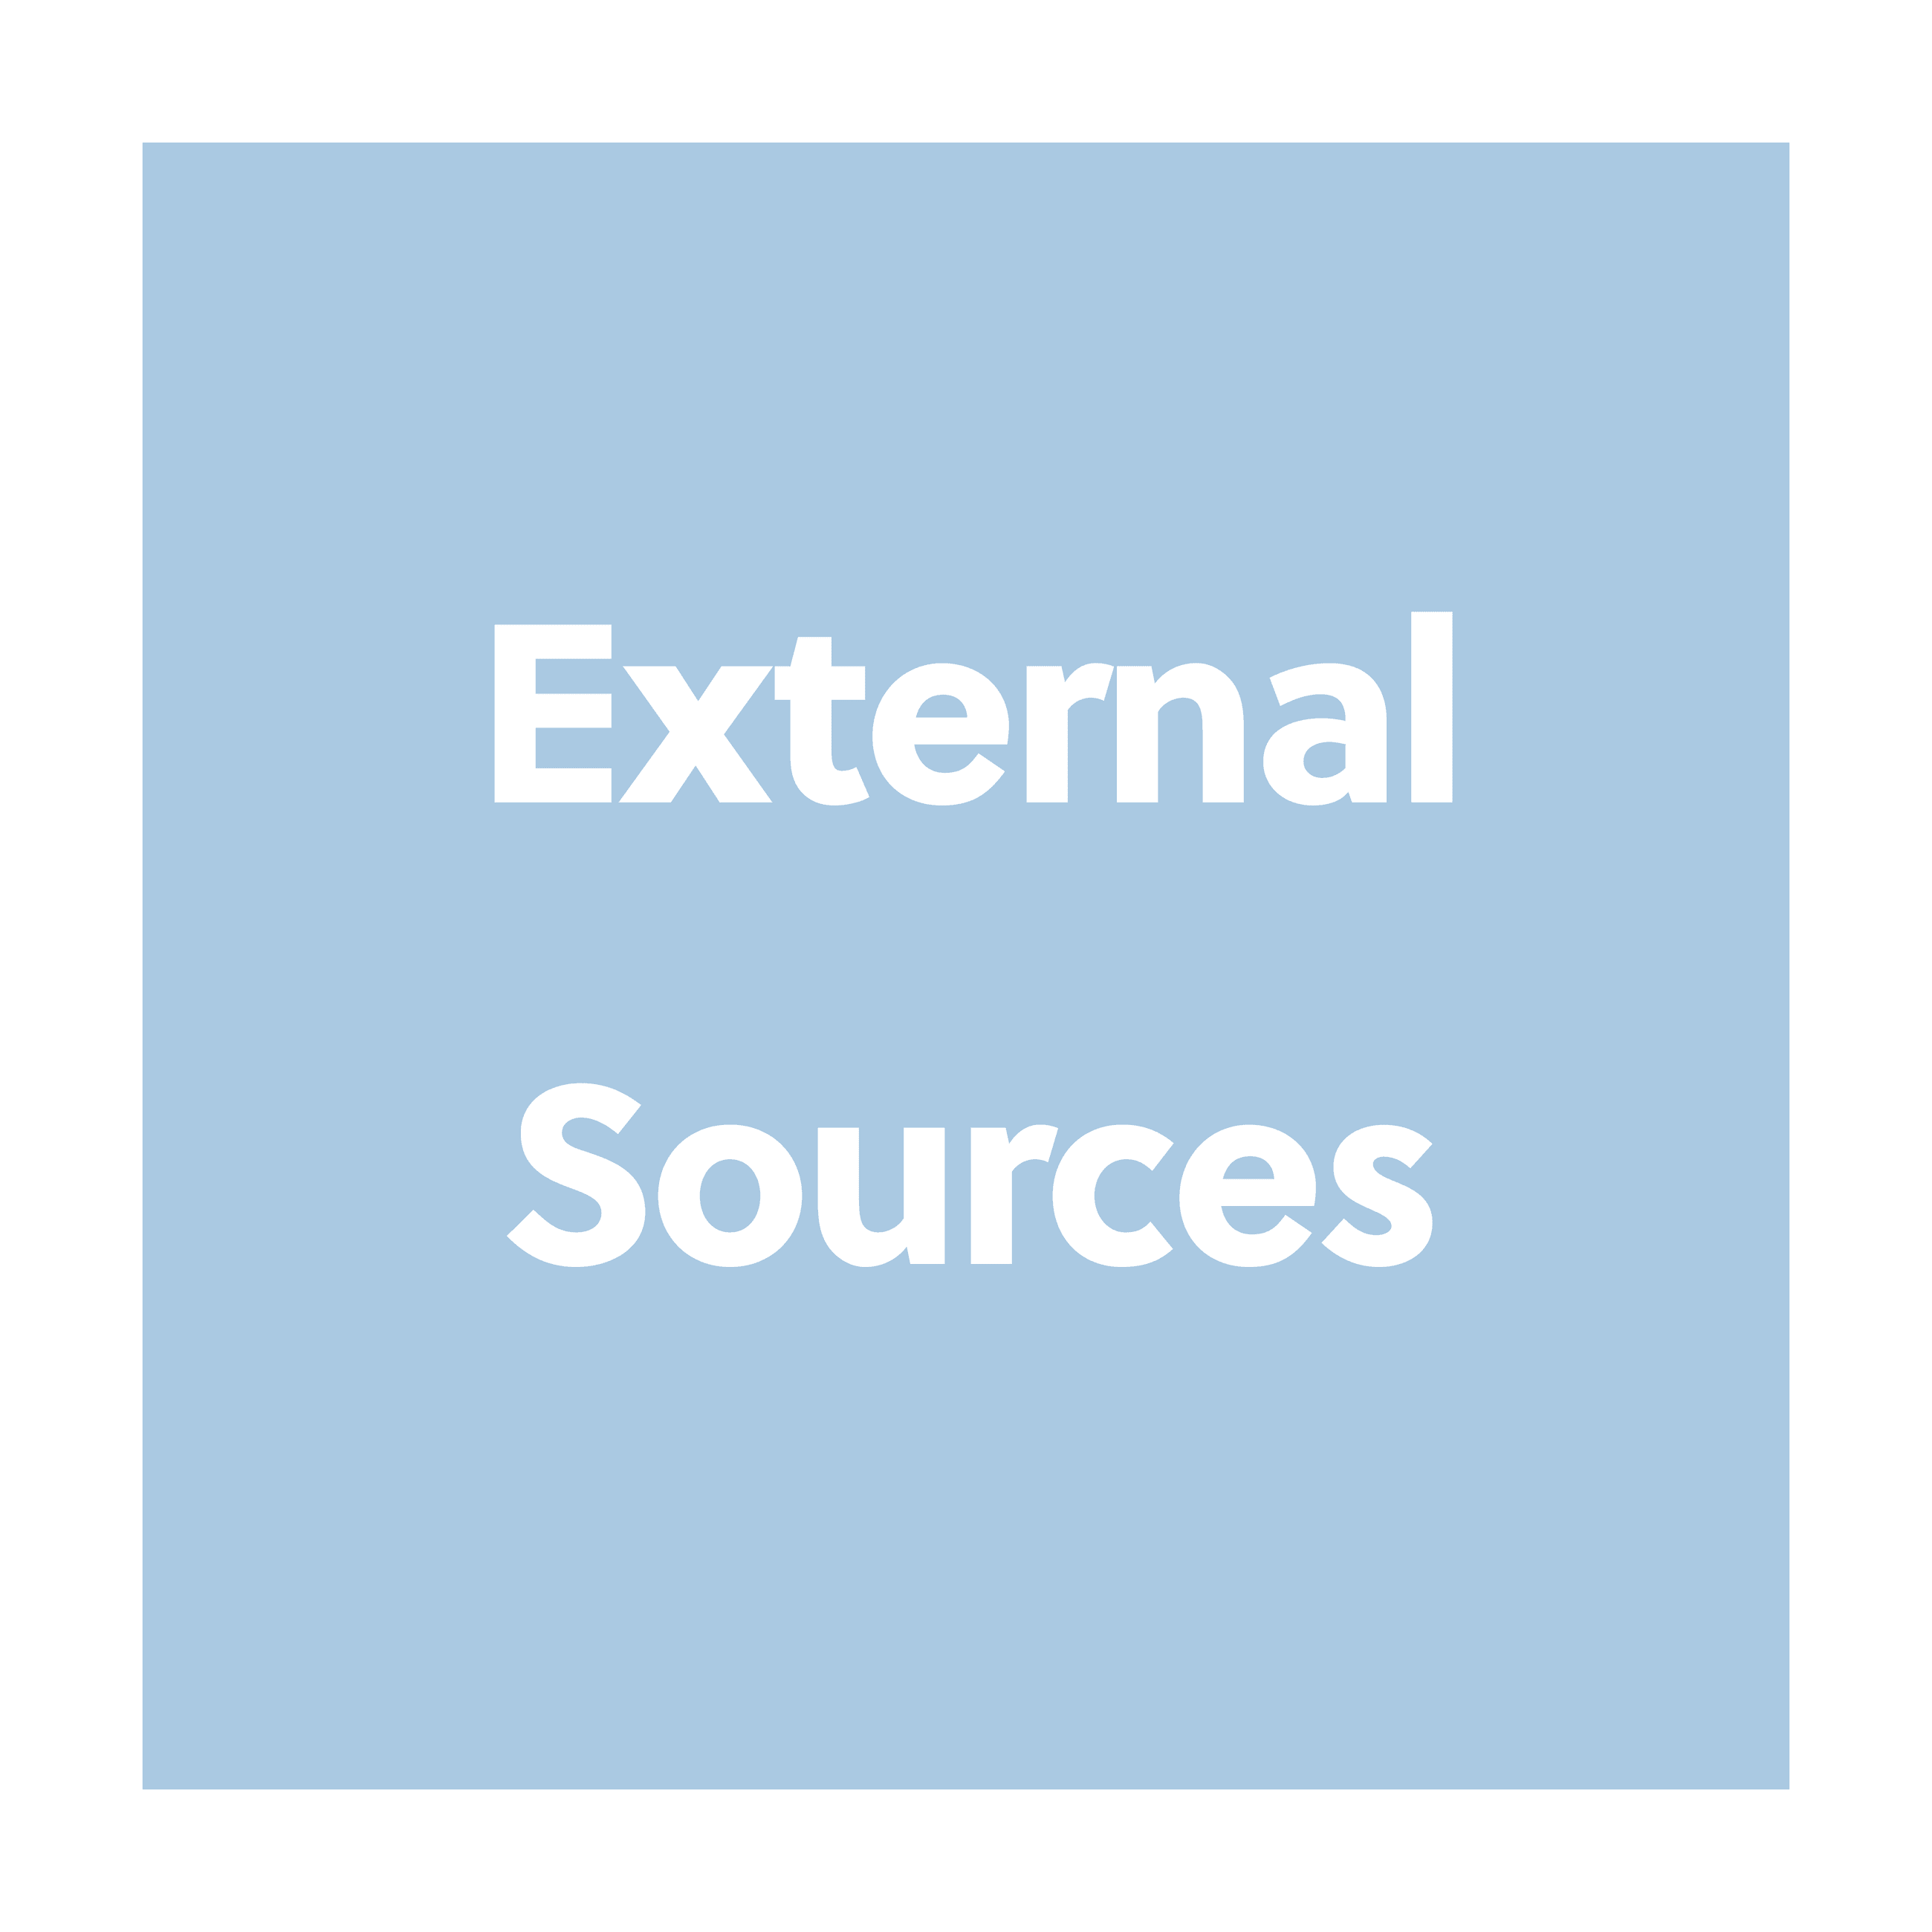 External sources